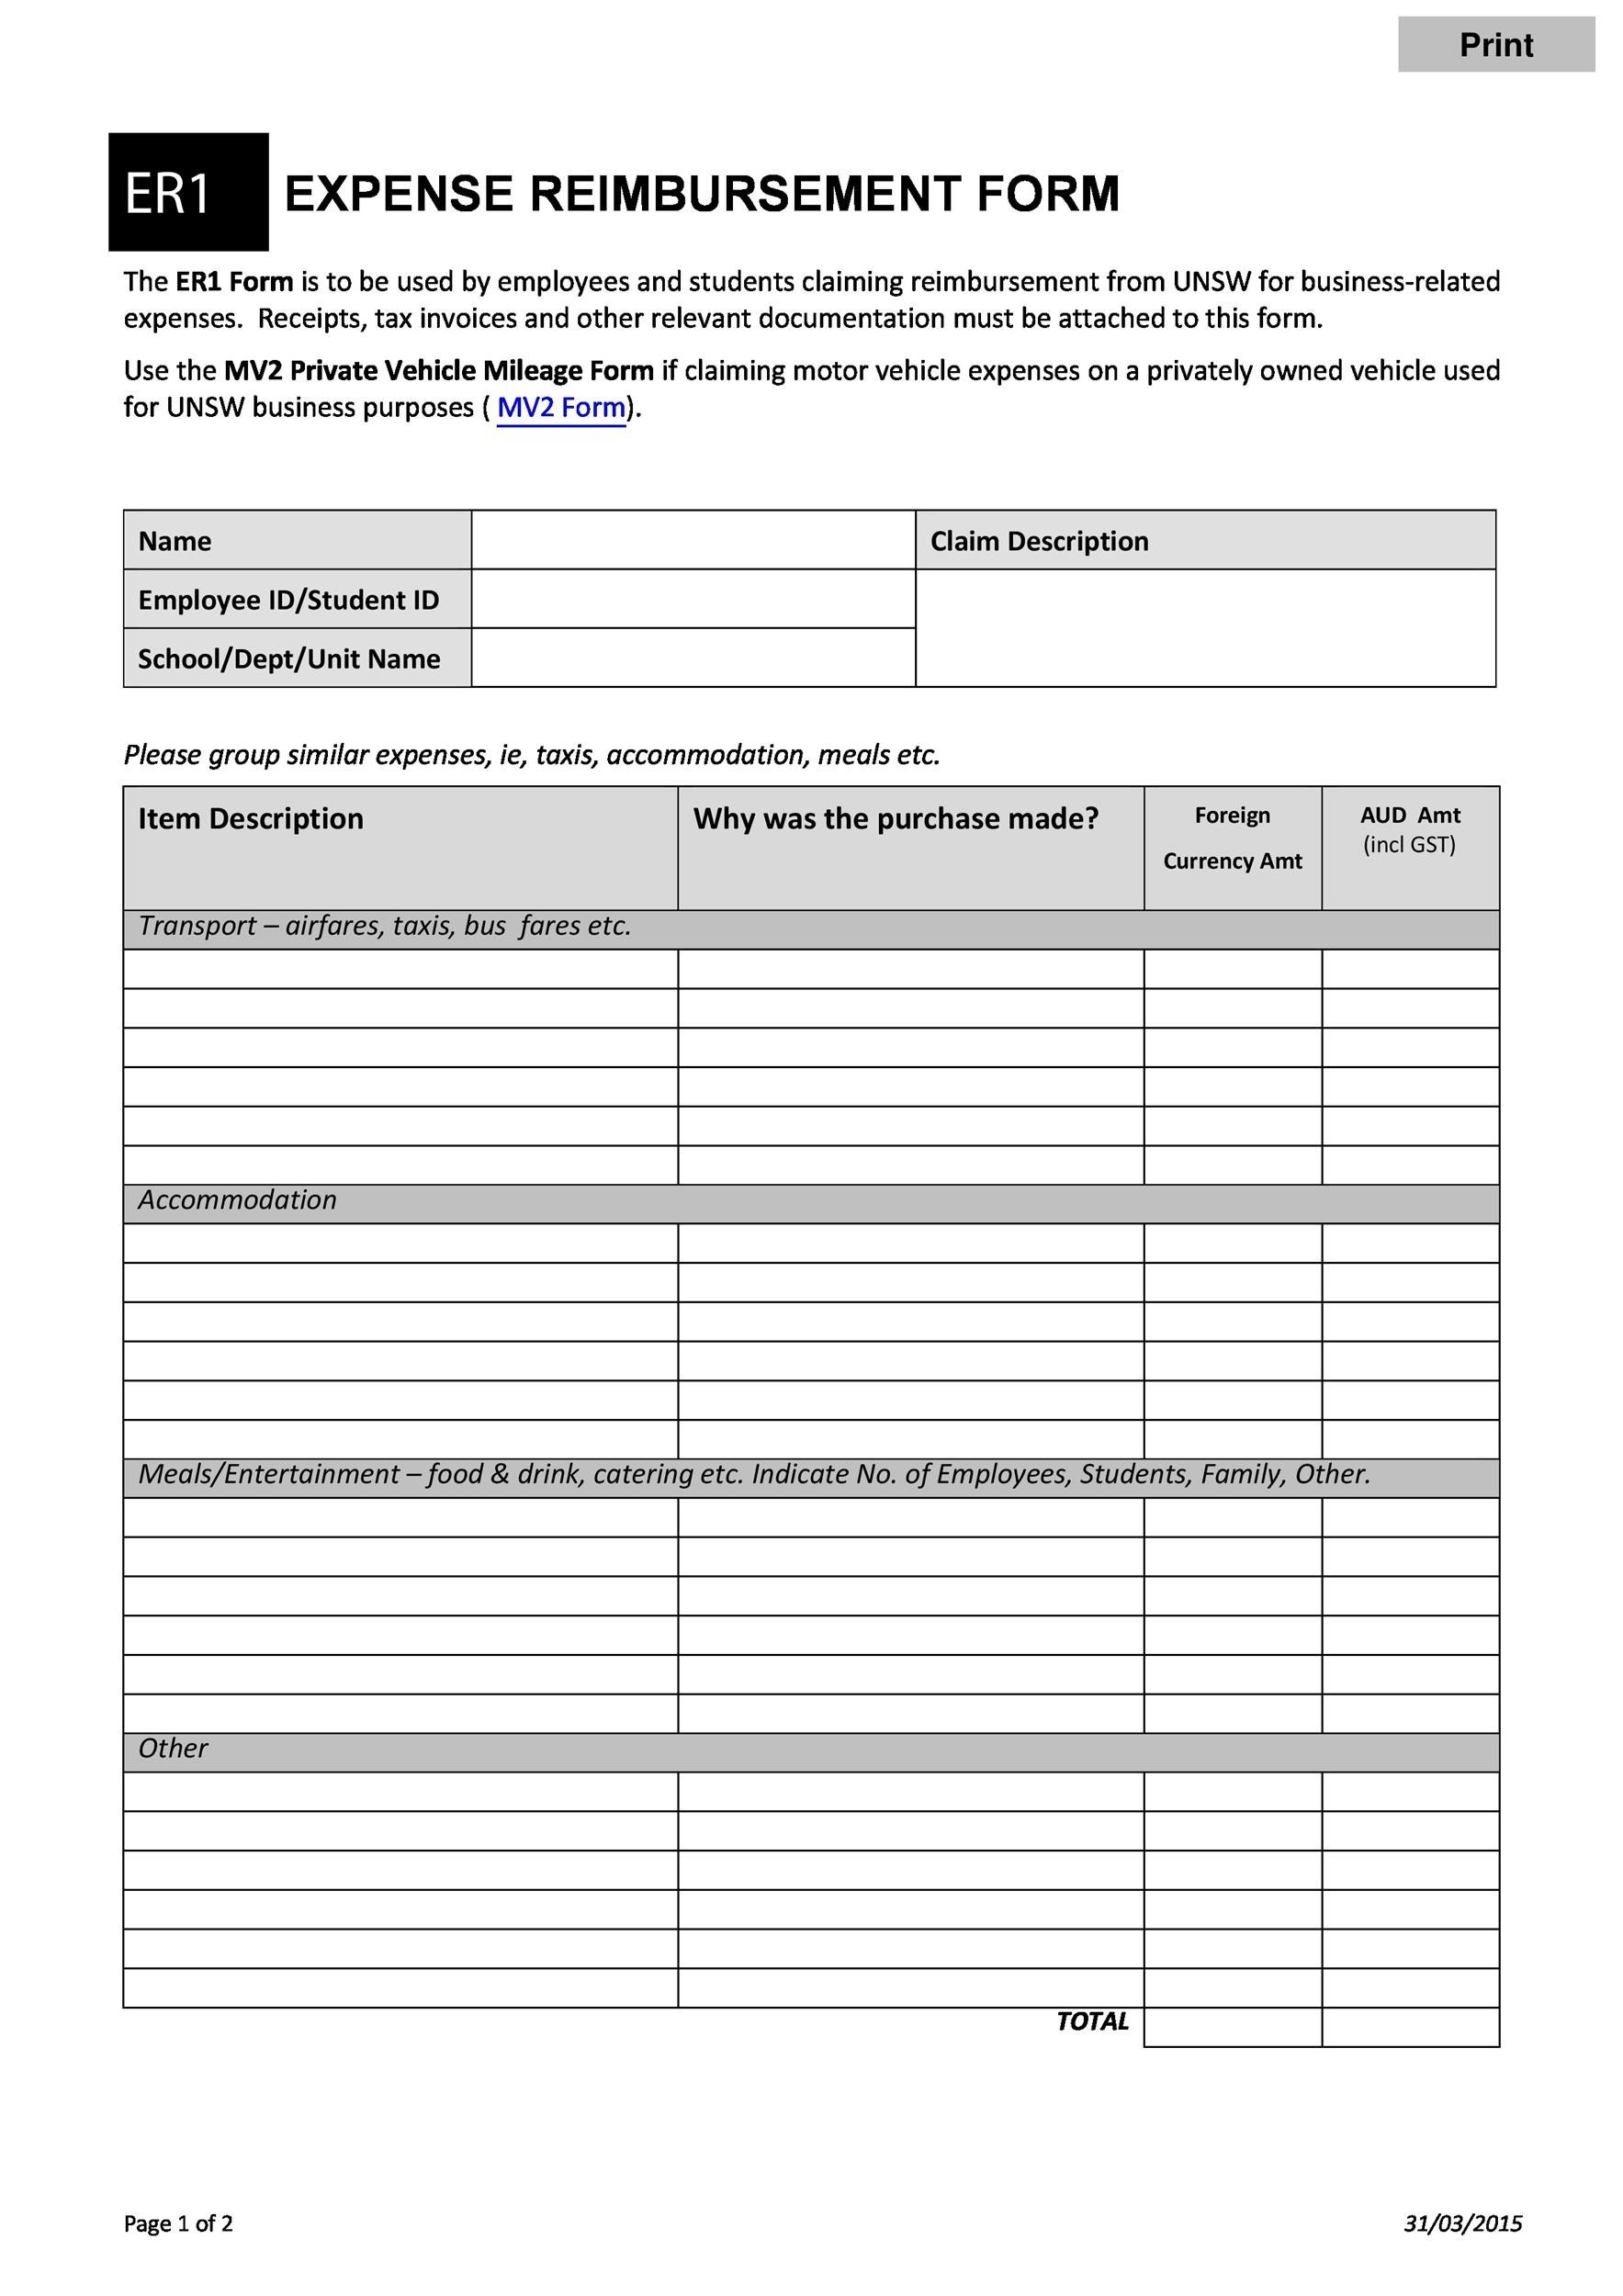 employee reimbursement forms 47 Reimbursement Form Templates [Mileage, Expense, VSP]